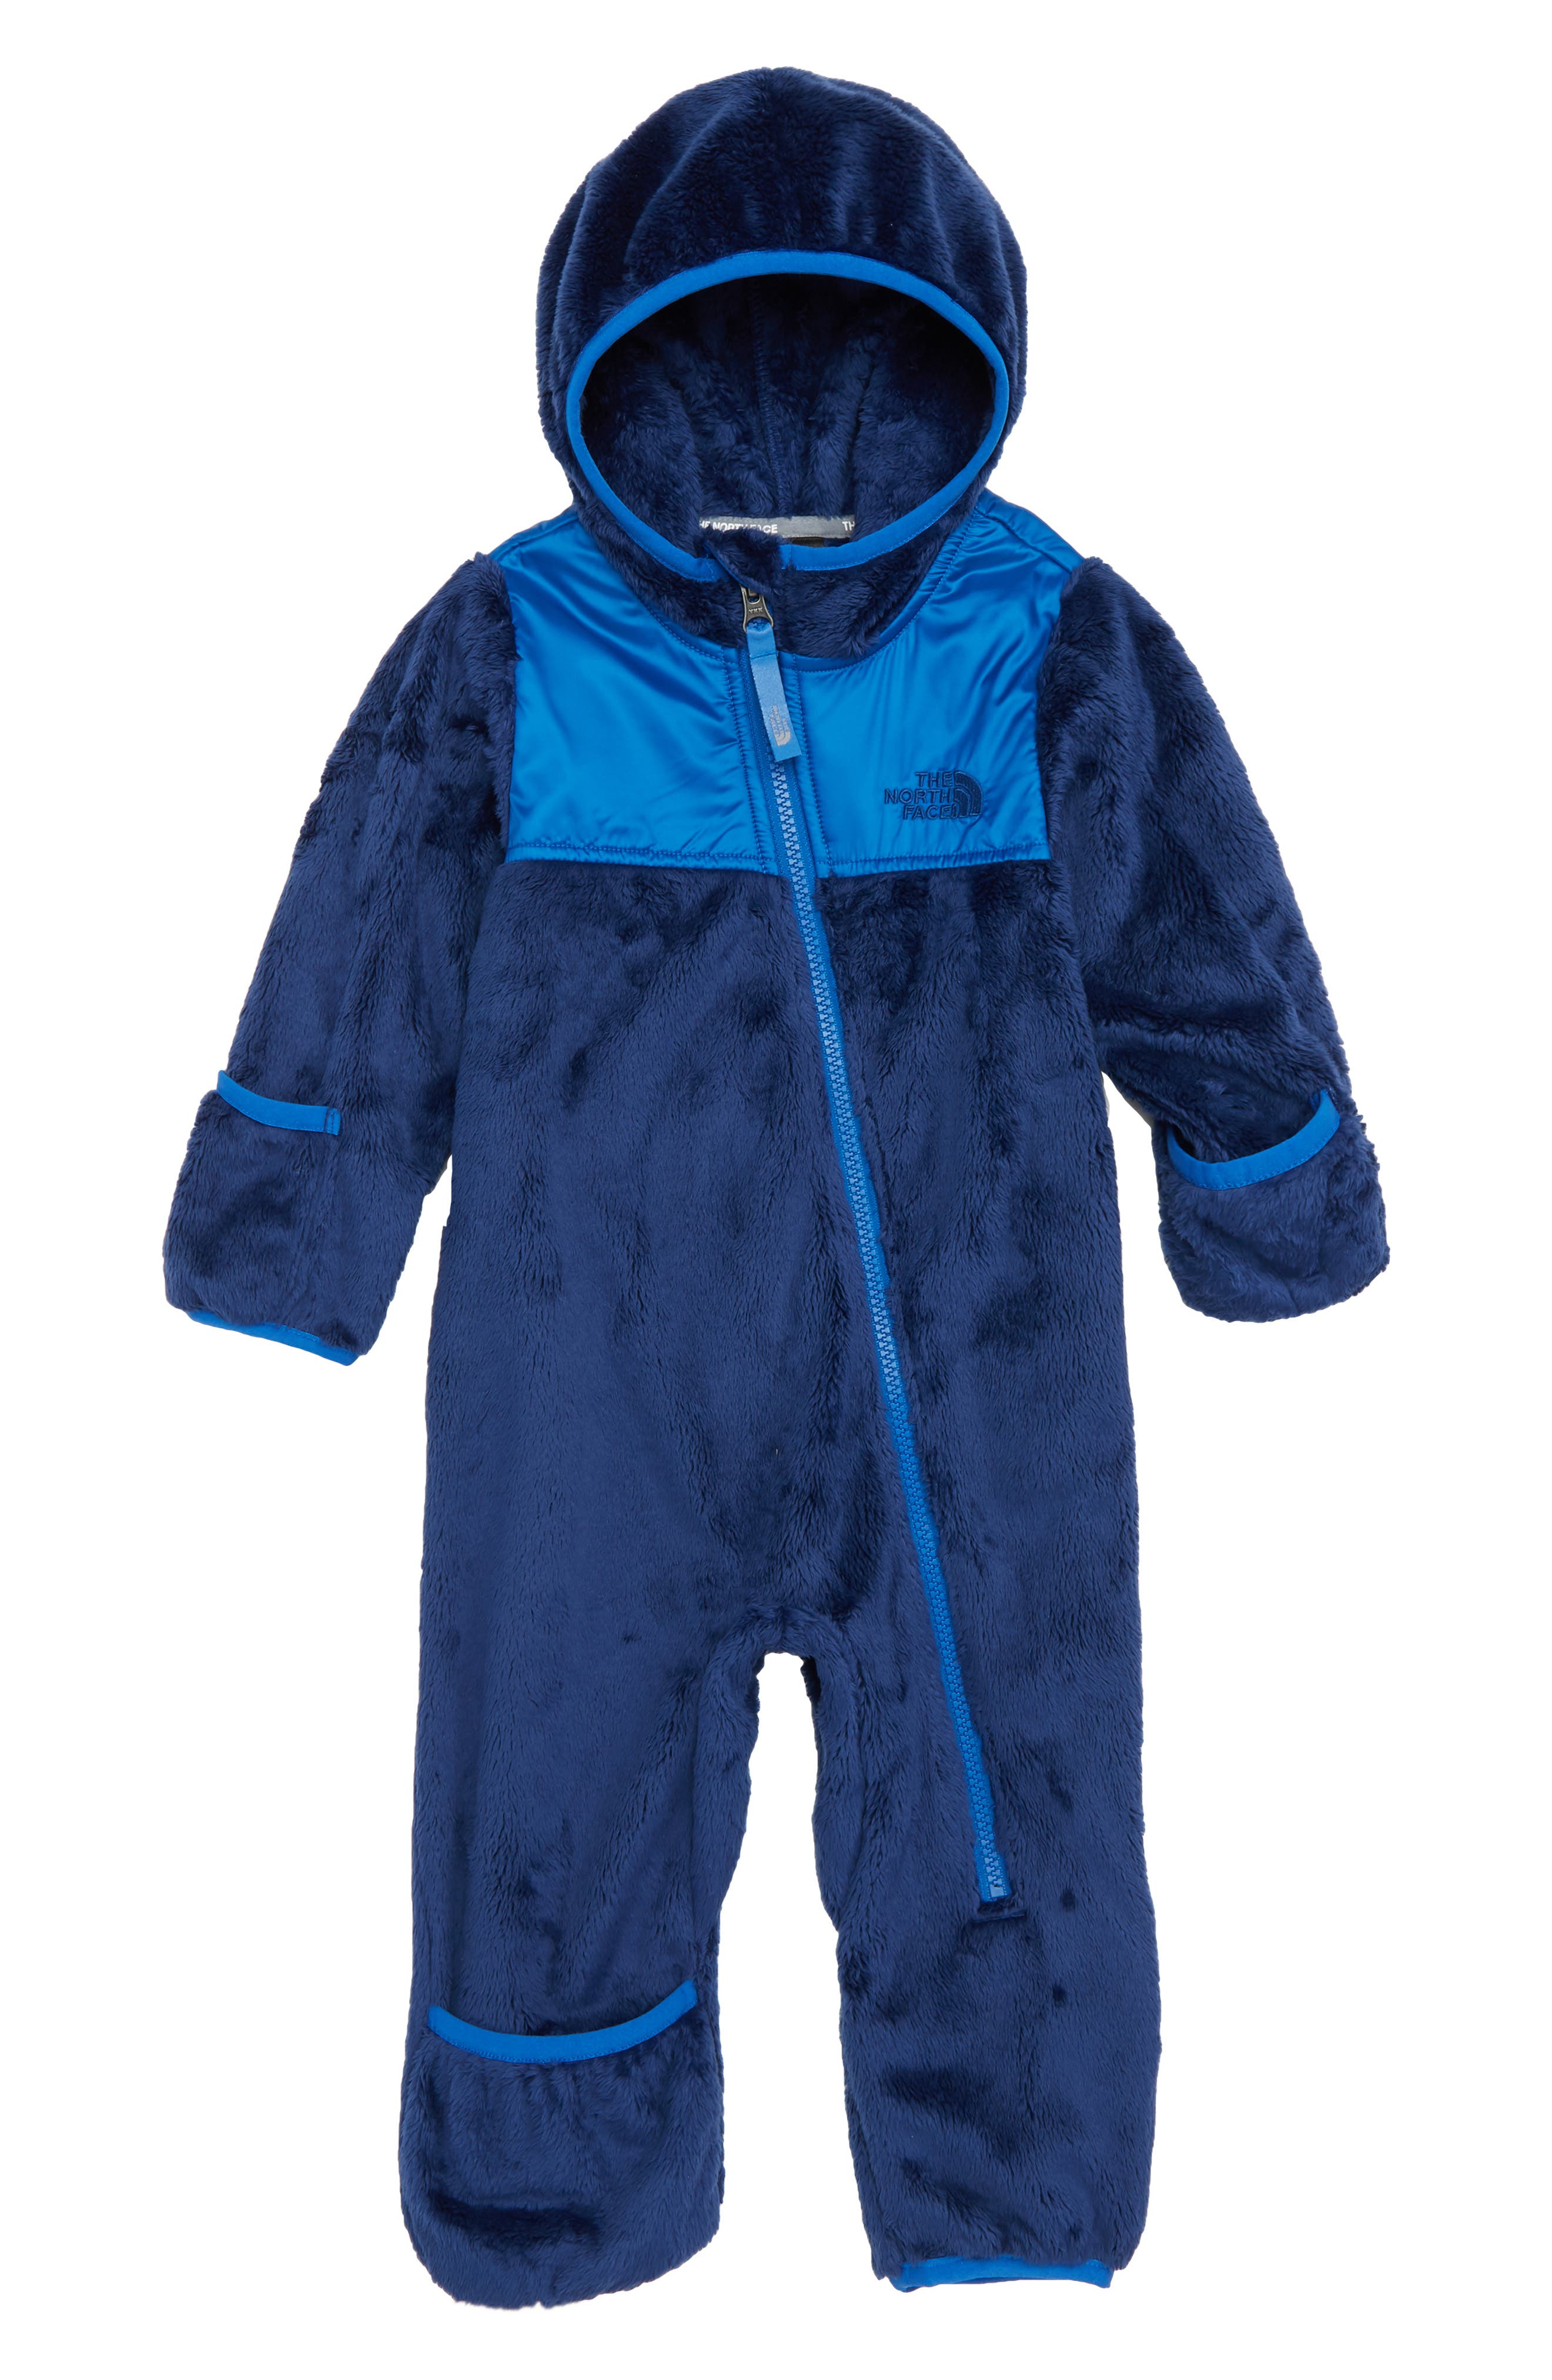 THE NORTH FACE Oso Hooded Fleece Romper, Main, color, MIDLINE BLUE